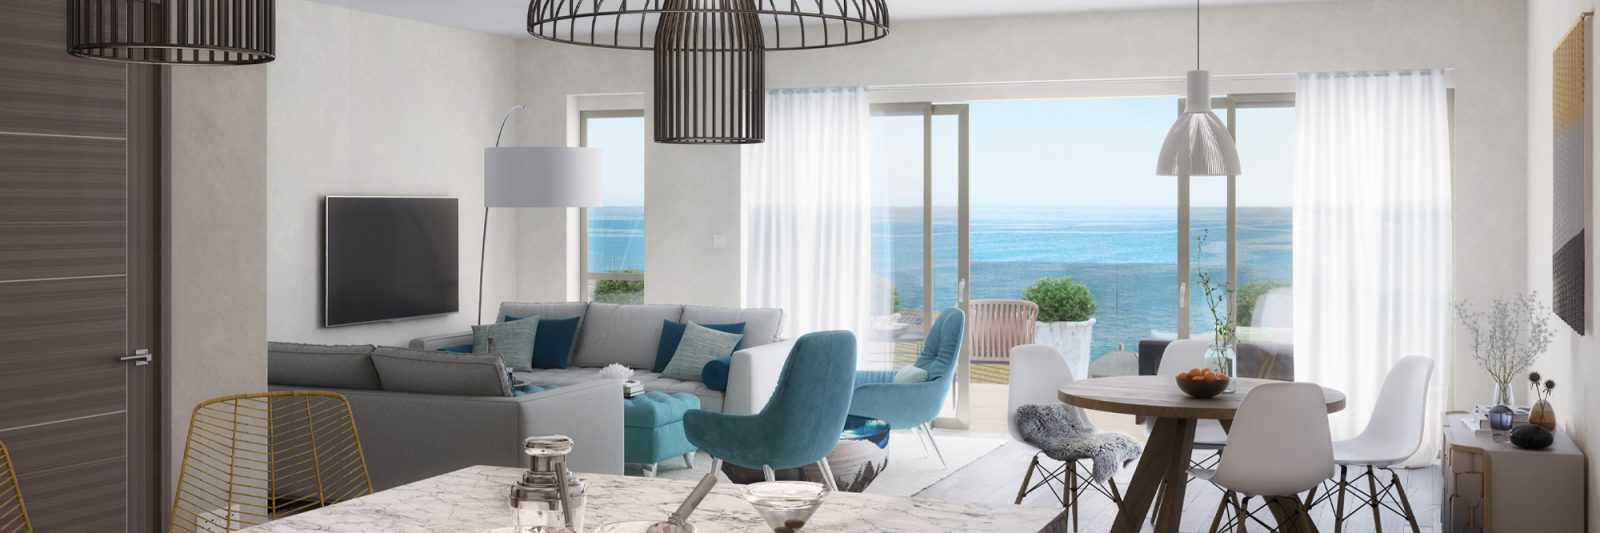 Stephens and stephens developers saltwater pentire newquay cornwall cgi interior 2000x1350